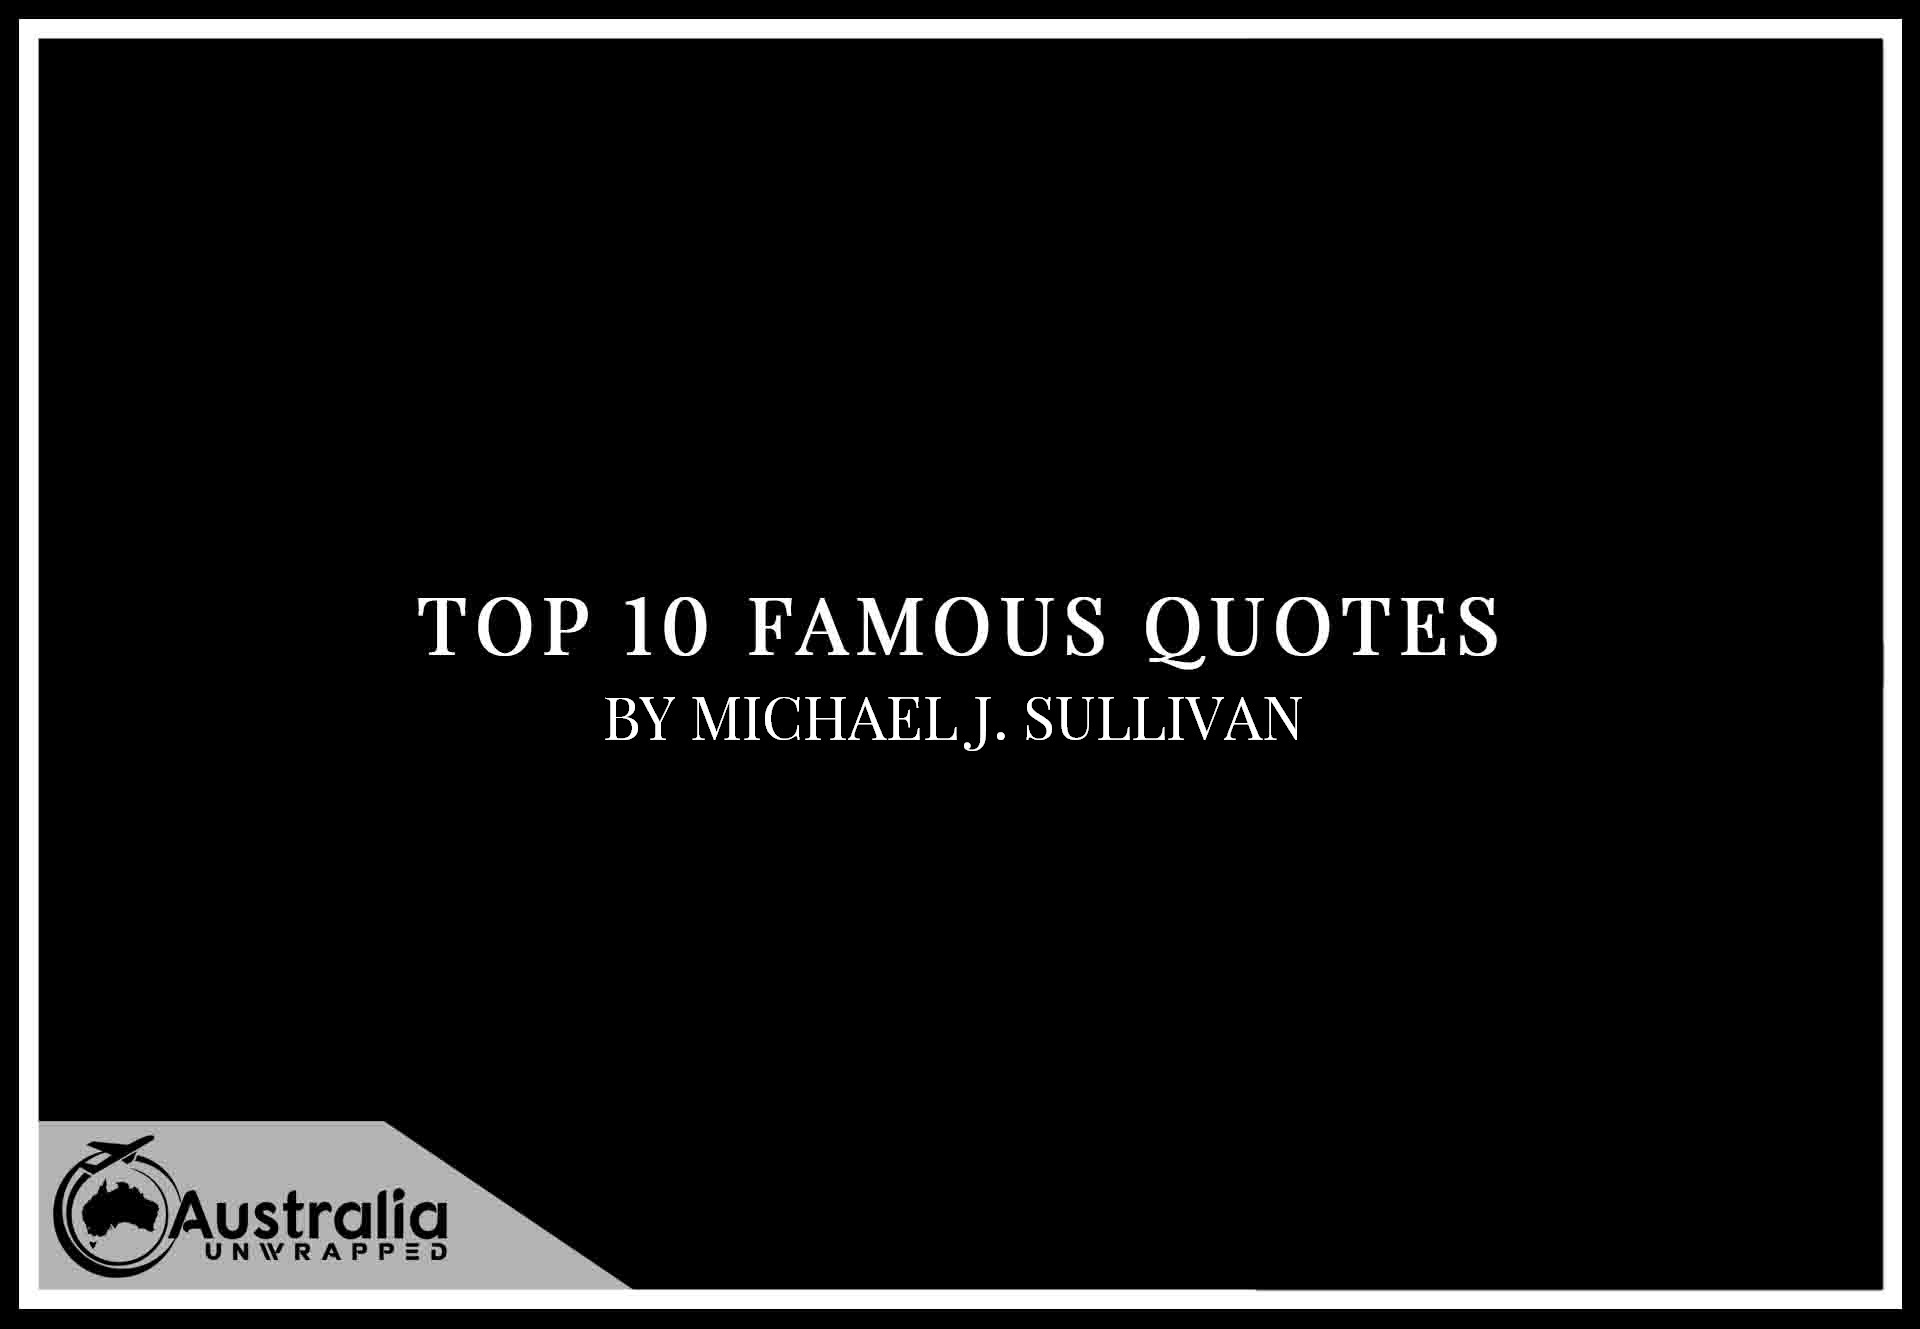 Top 10 Famous Quotes by Author Michael J. Sullivan